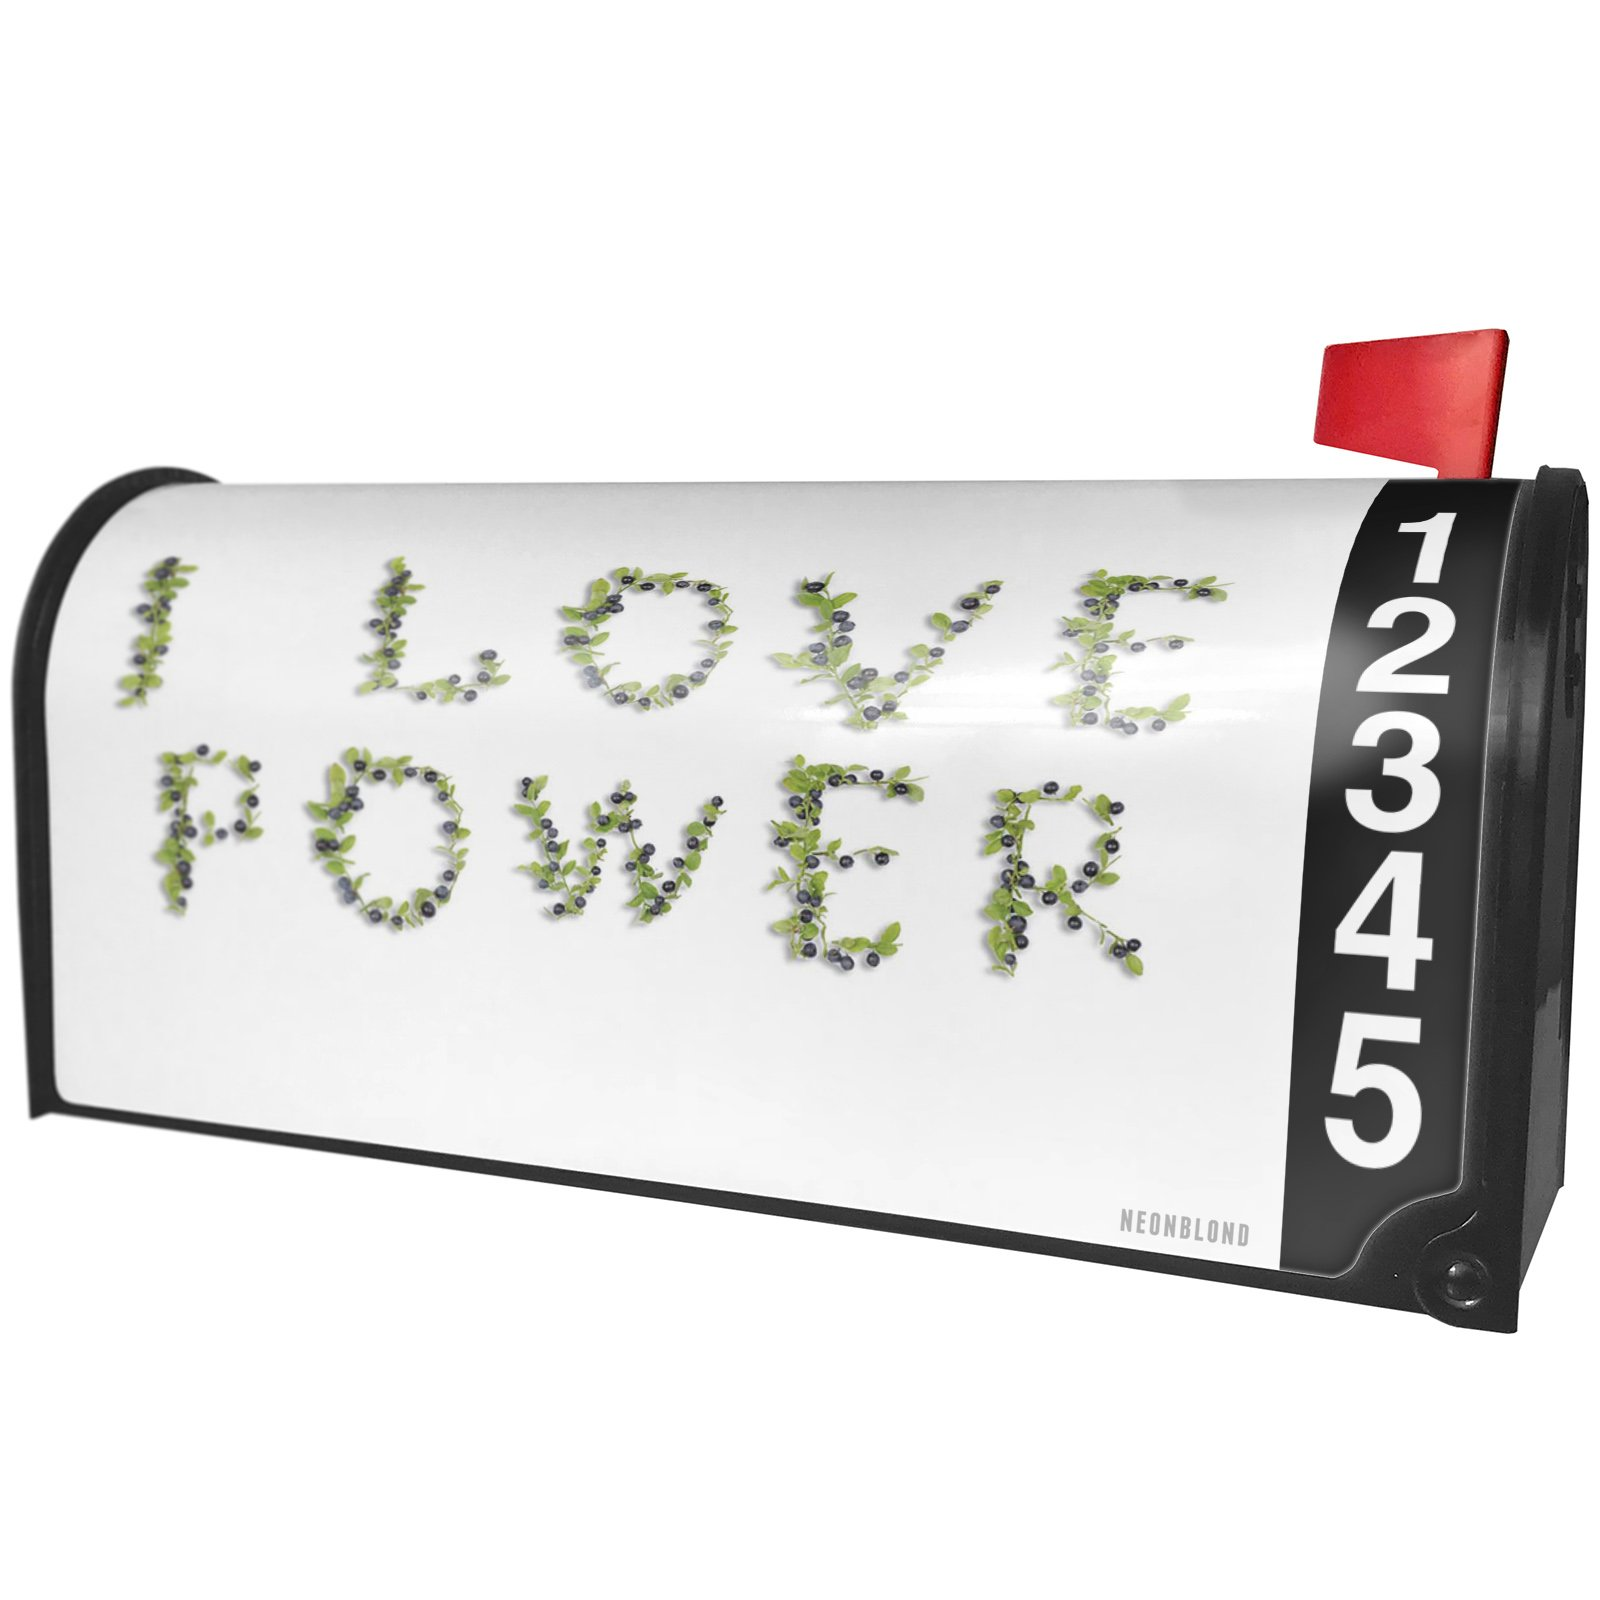 NEONBLOND I Love Power Fresh Blueberry Fruits Magnetic Mailbox Cover Custom Numbers